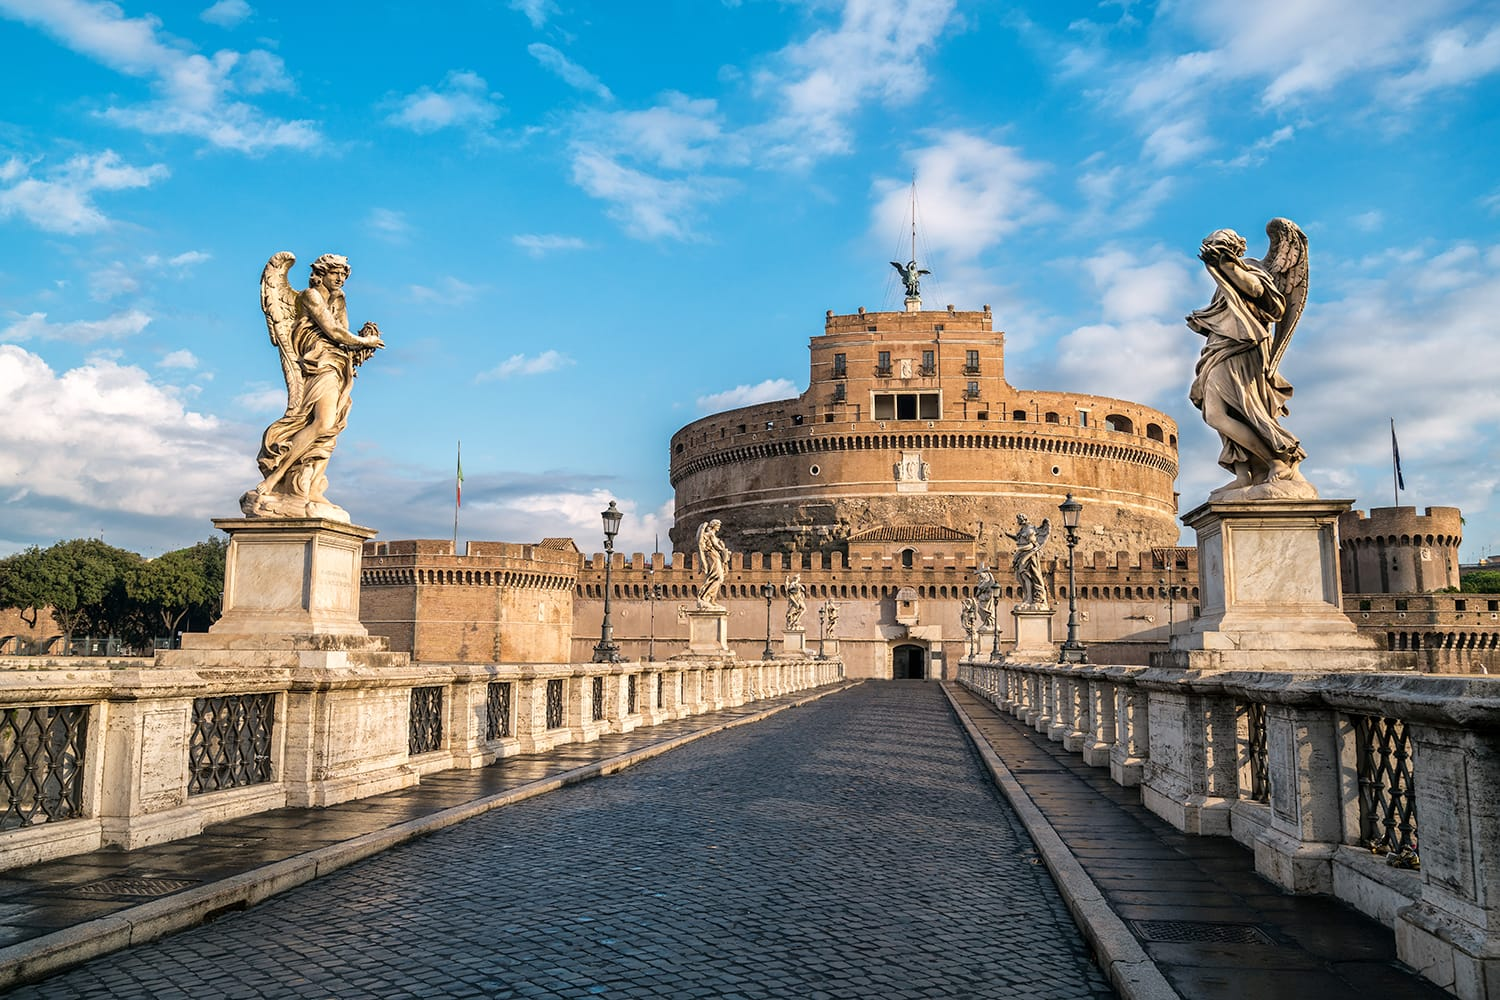 Castel Sant Angelo or Mausoleum of Hadrian in Rome Italy, built in ancient Rome, it is now the famous tourist attraction of Vatican. Castel Sant Angelo was once the tallest building of Vatican